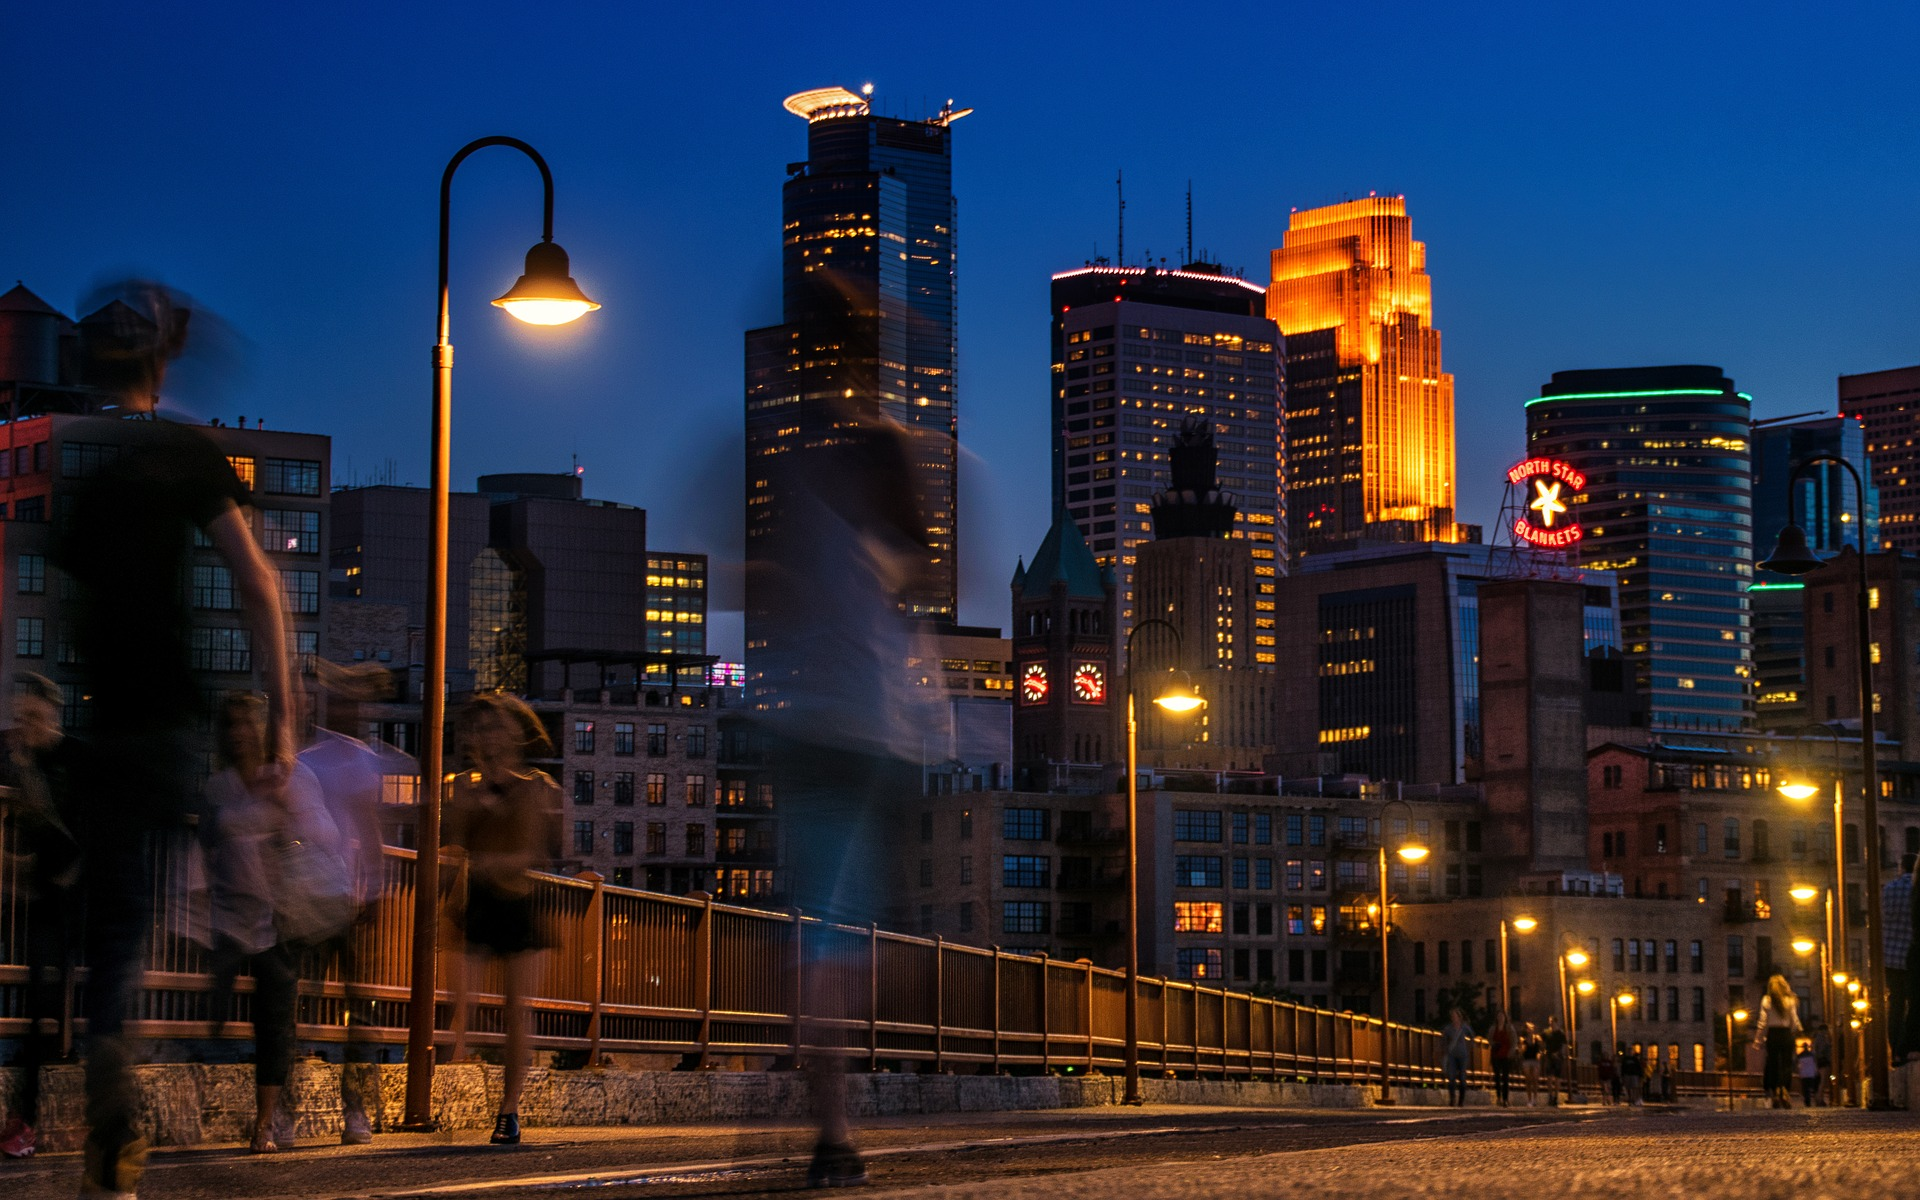 minneapolis-1824972_1920